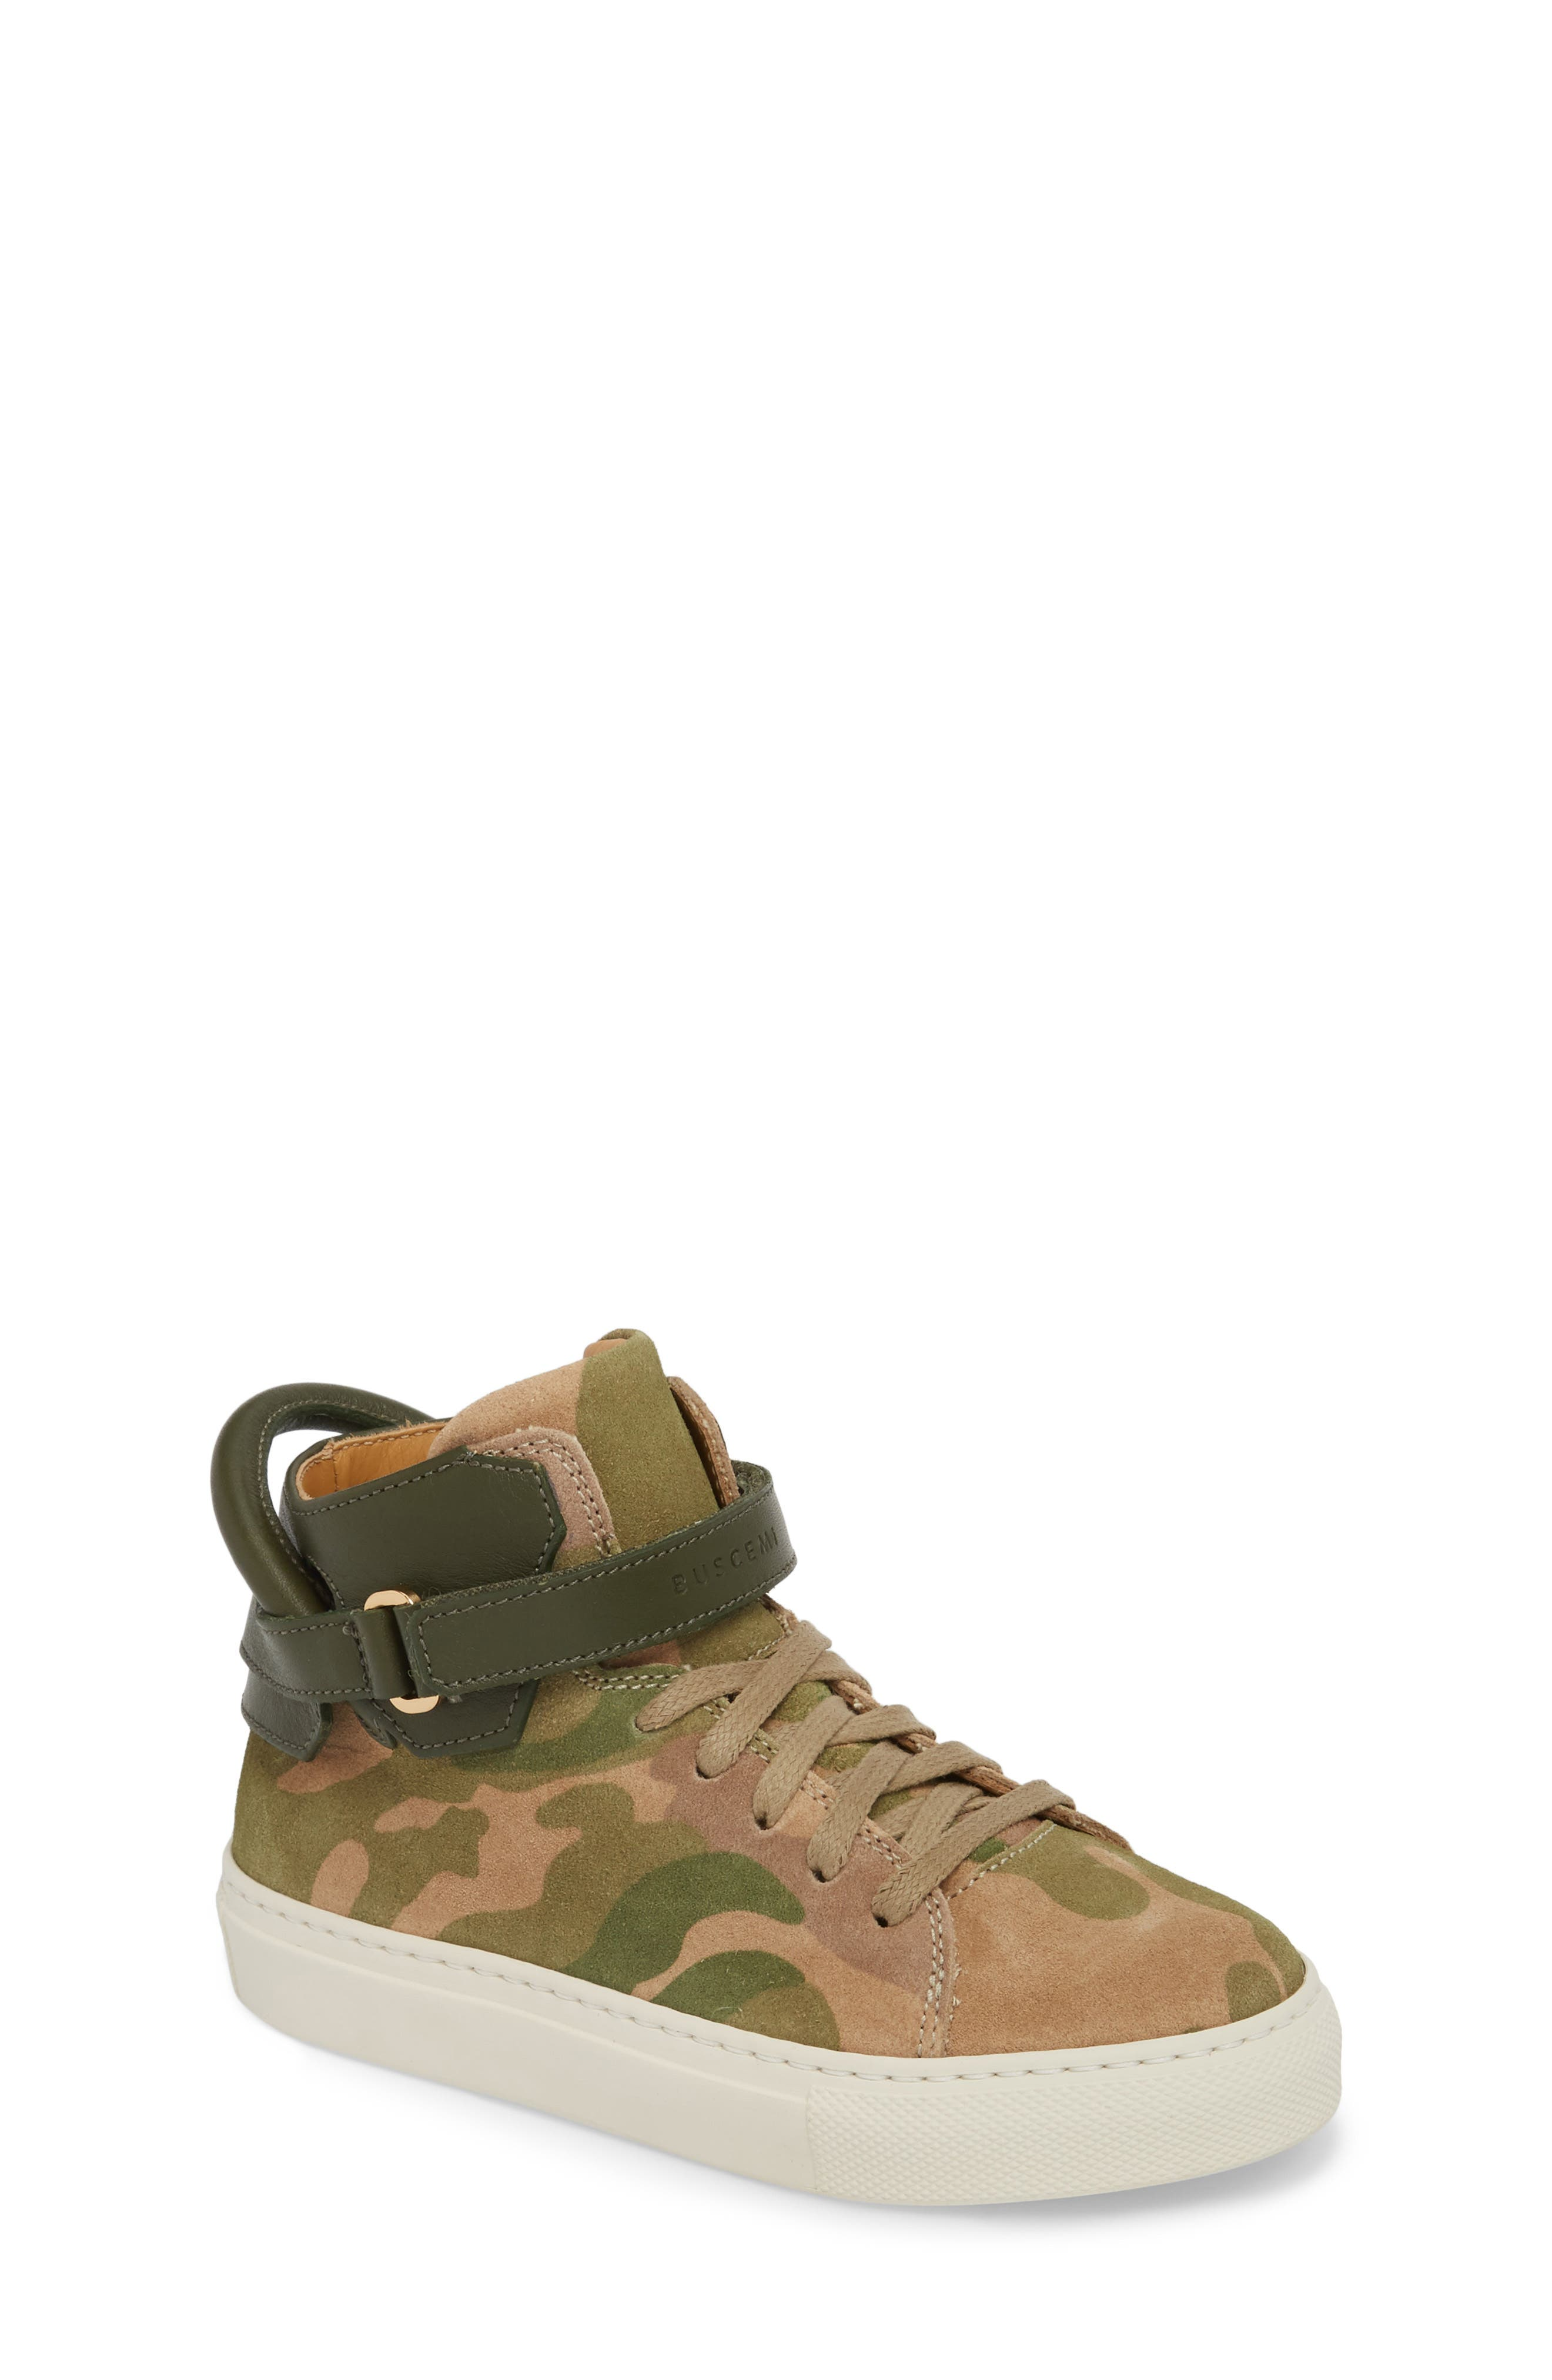 Suede High Top Sneaker,                             Main thumbnail 1, color,                             CAMO SUEDE